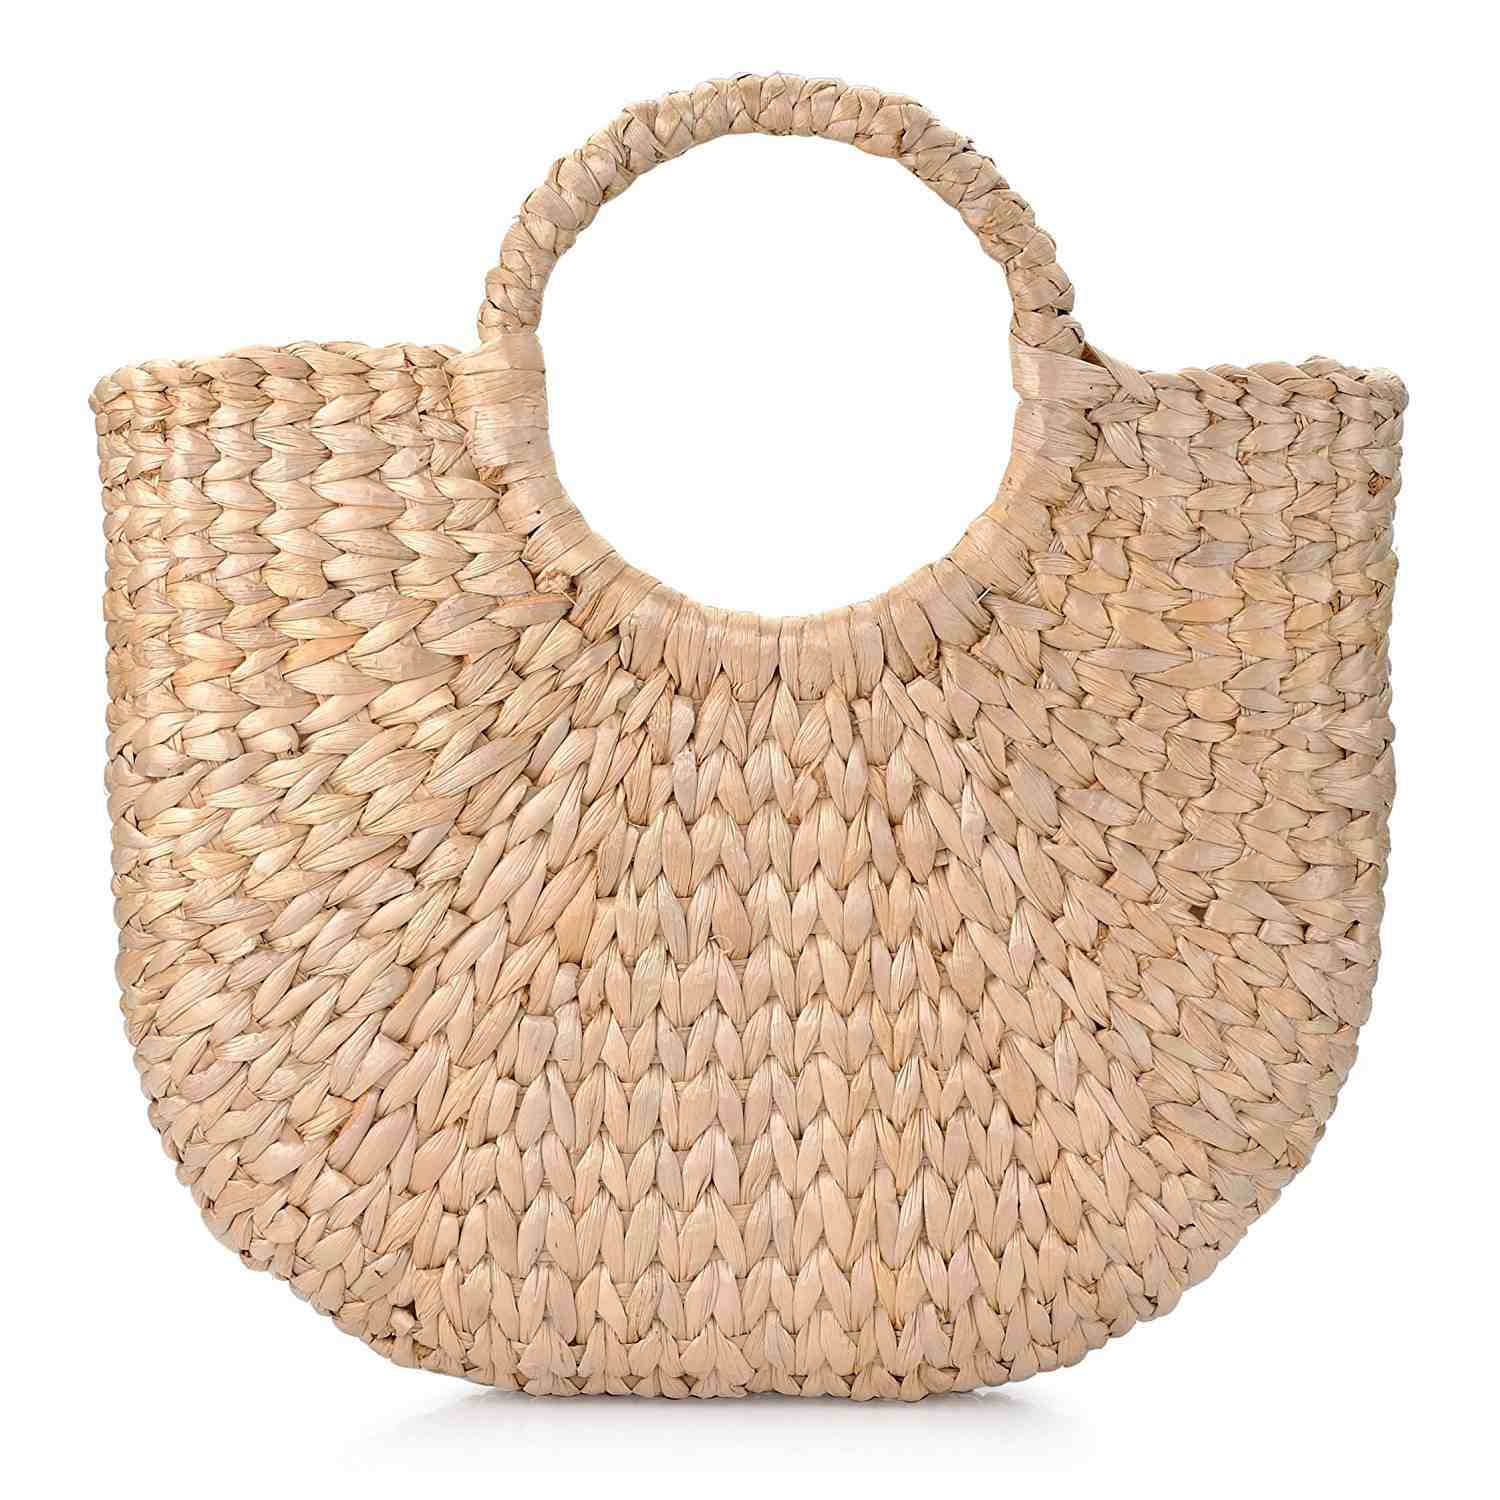 Rattan Bag—Amazon Mother's Day Gifts